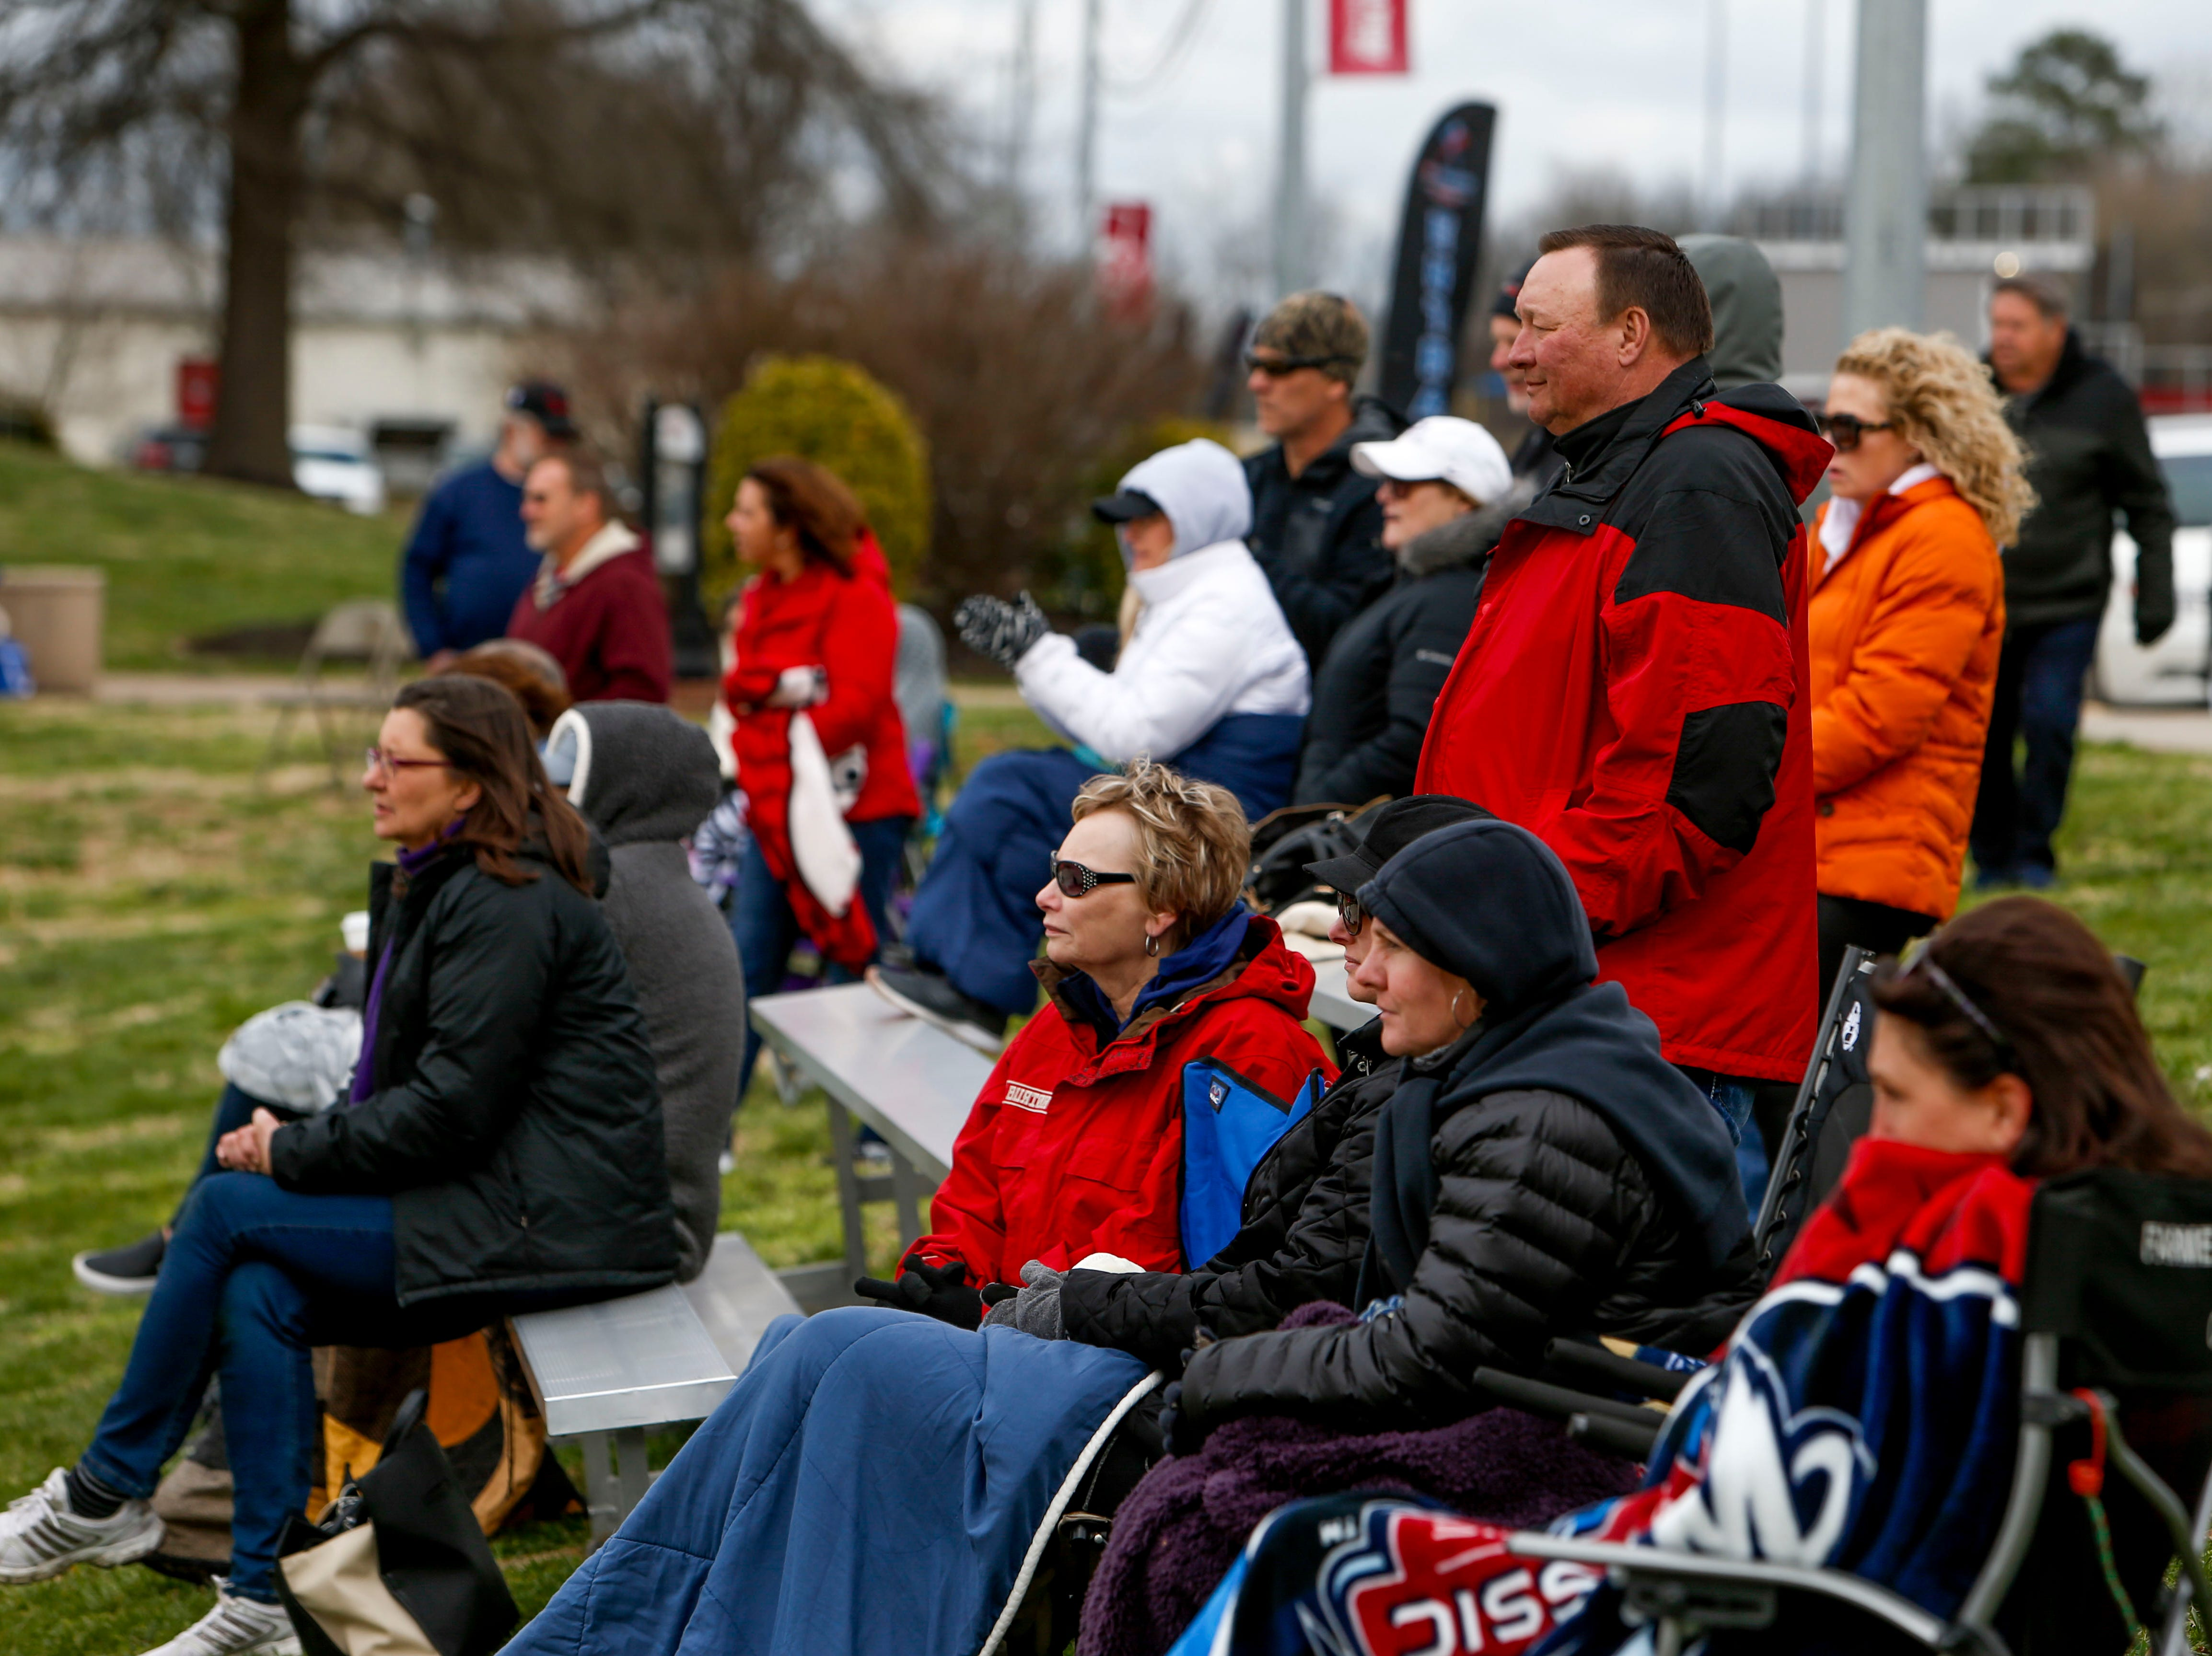 Spectators watch beach volleyball in winter jackets and covered in blankets at Winfield Dunn Center lawn in Clarksville, Tenn., on Friday, March 15, 2019.